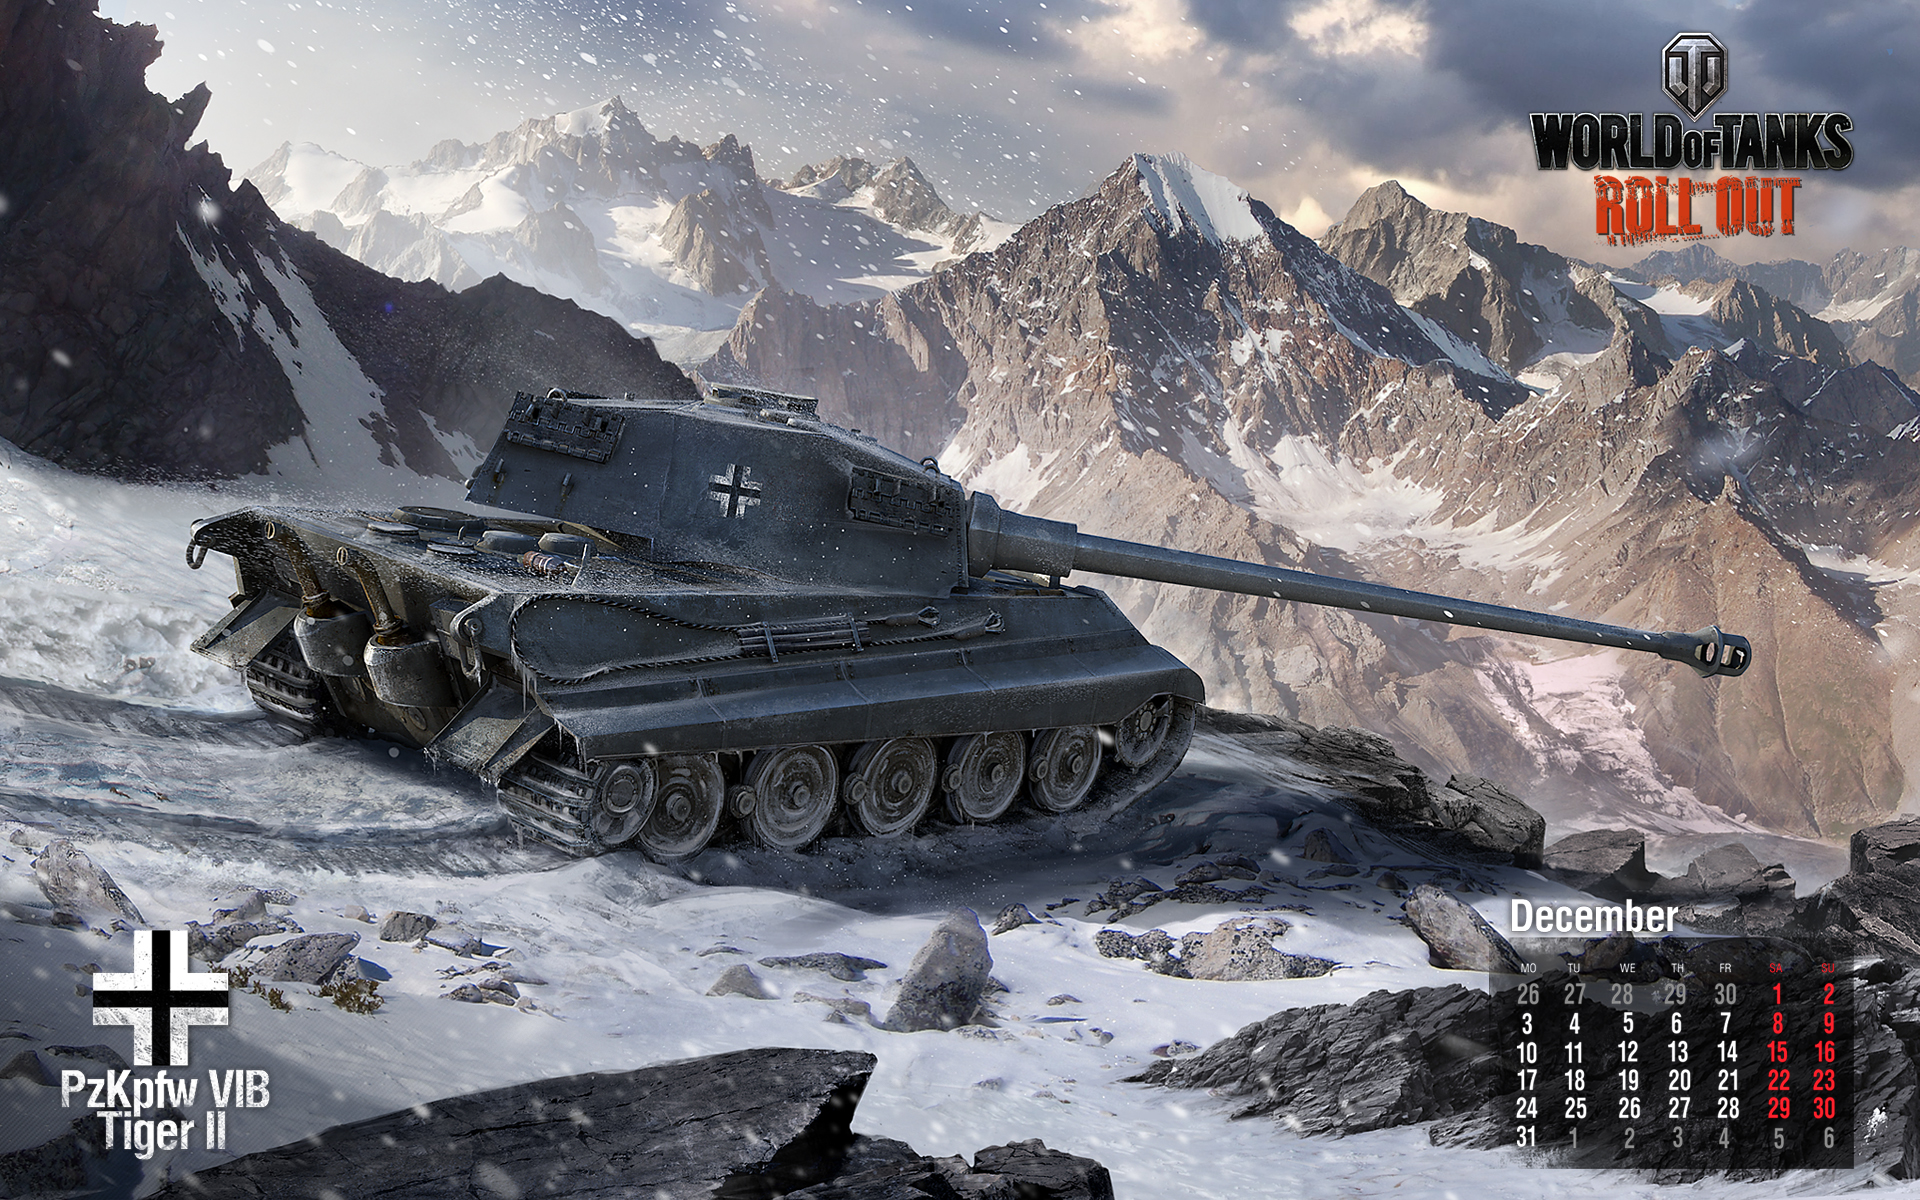 Wallpaper WOT Tanks IS D Graphics Games x